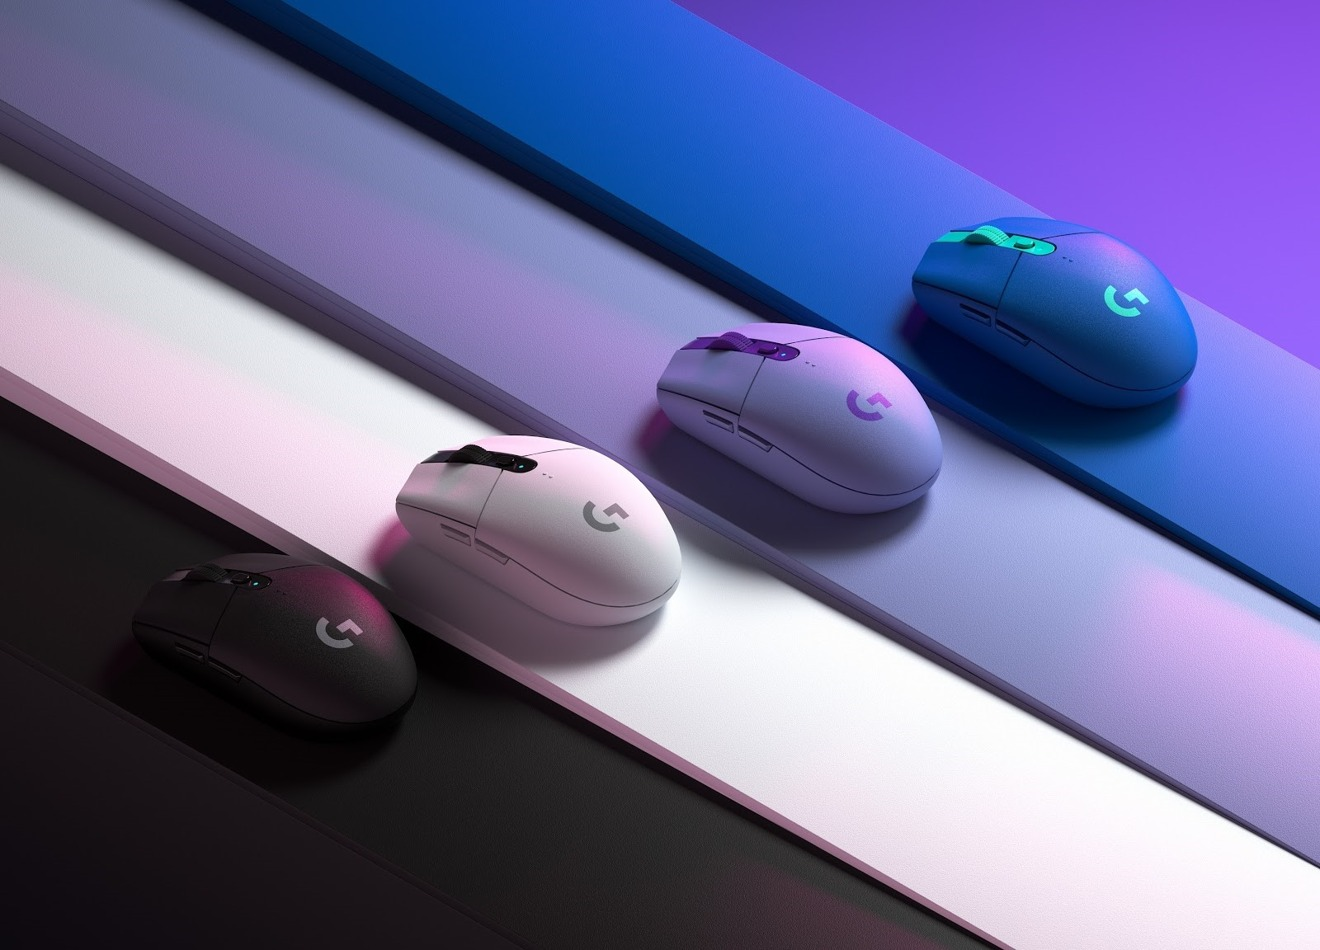 G305 Wireless Gaming Mouse Now Available in Blue and Lilac alongside White and Black